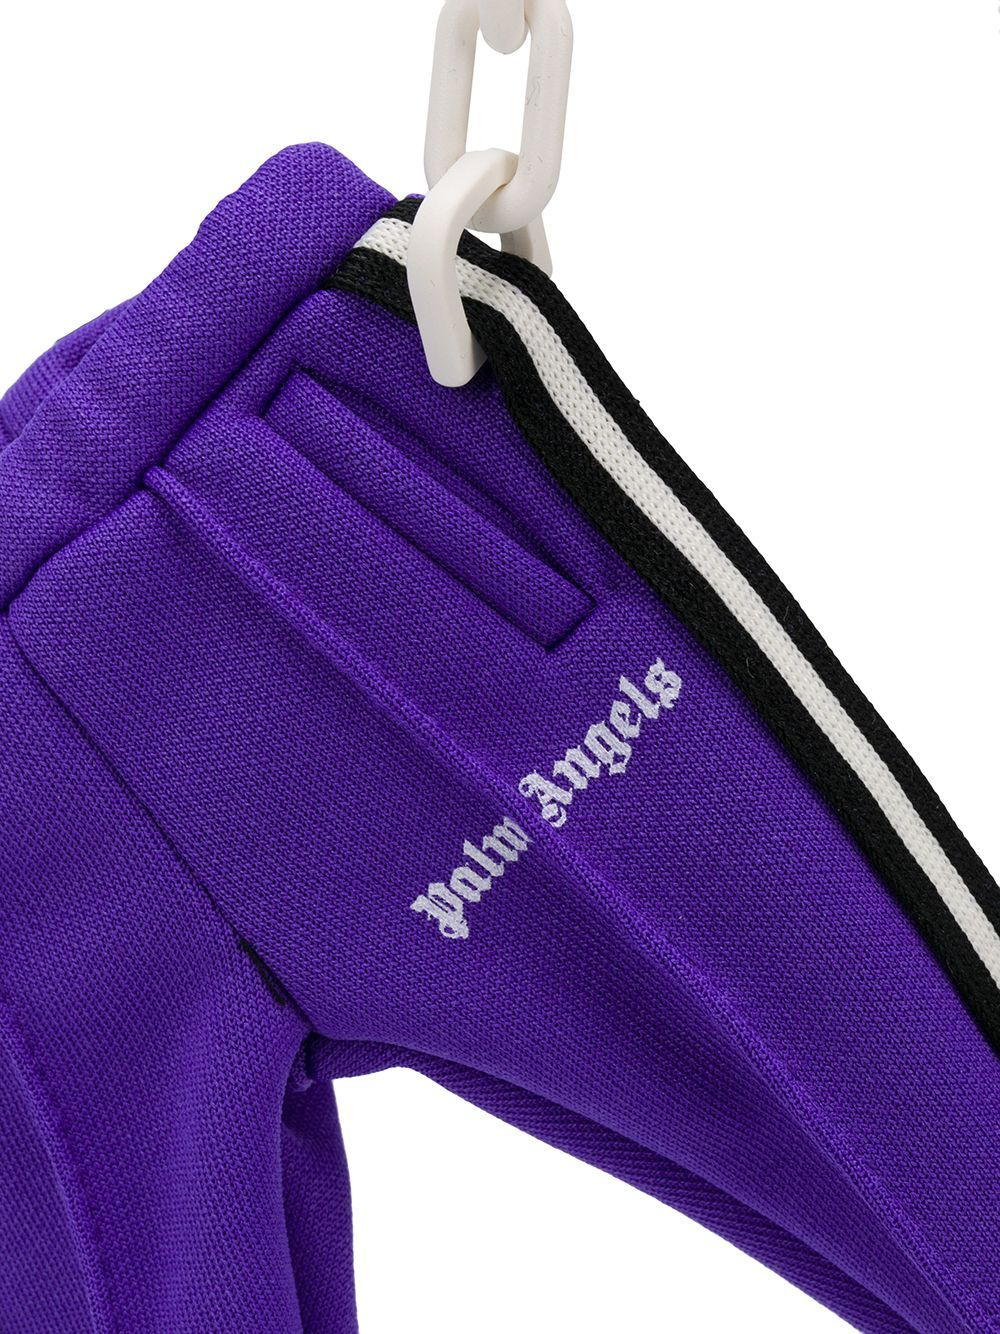 Palm Angels track pants keyring purple